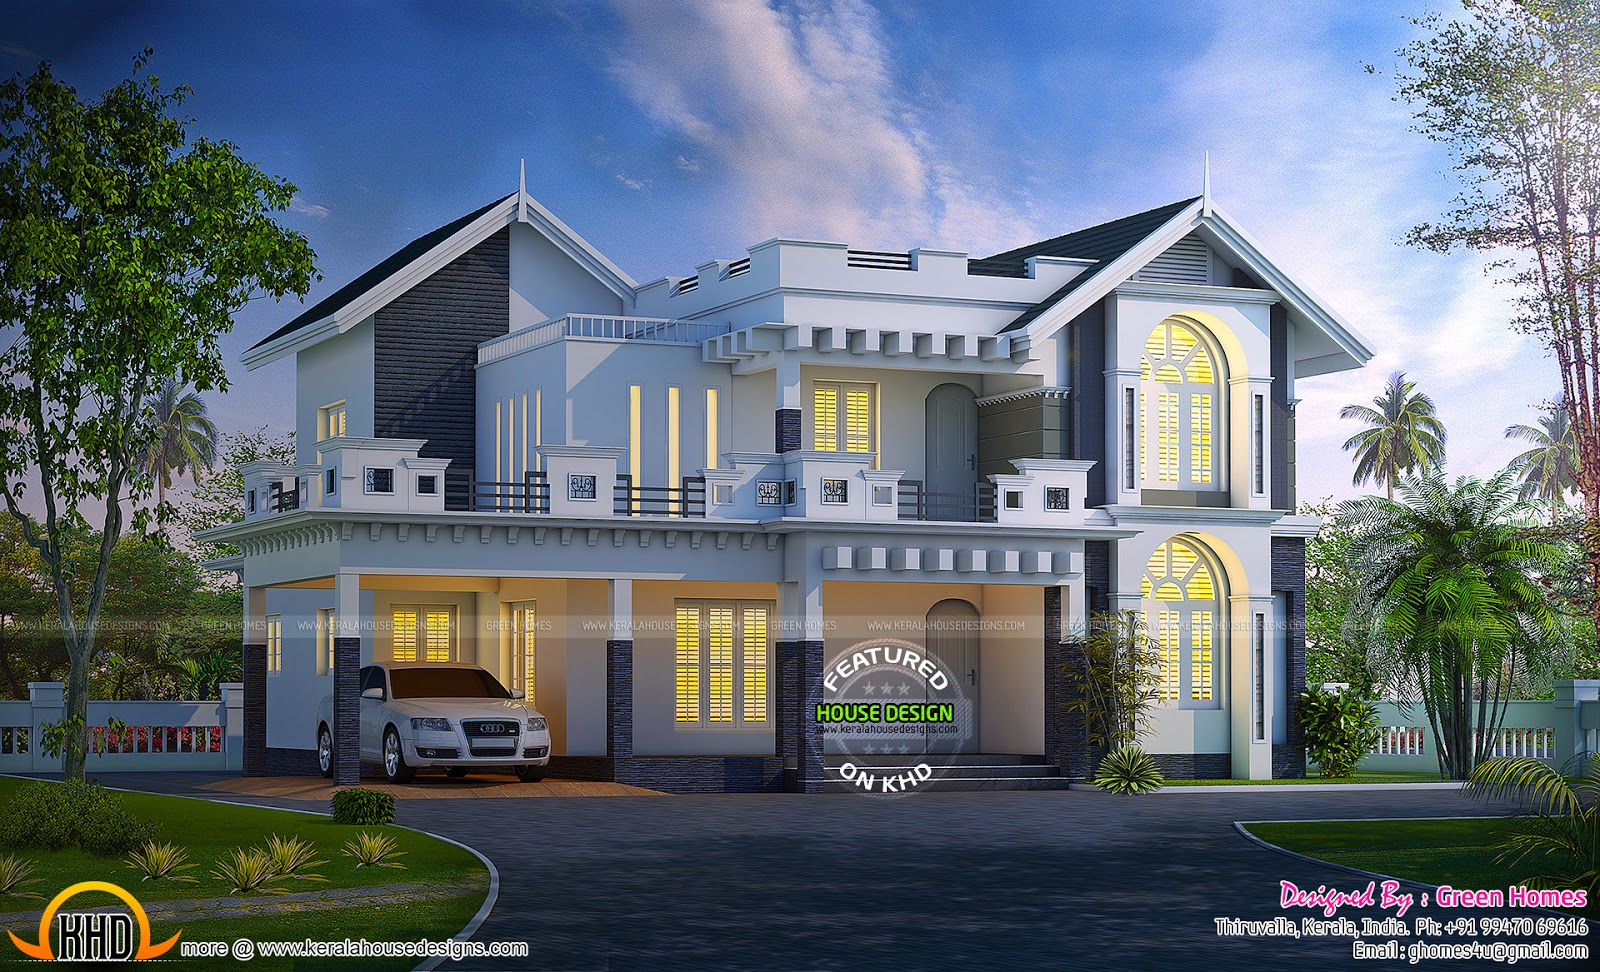 Kerala House Plans With Photos 800sqf Modern Design